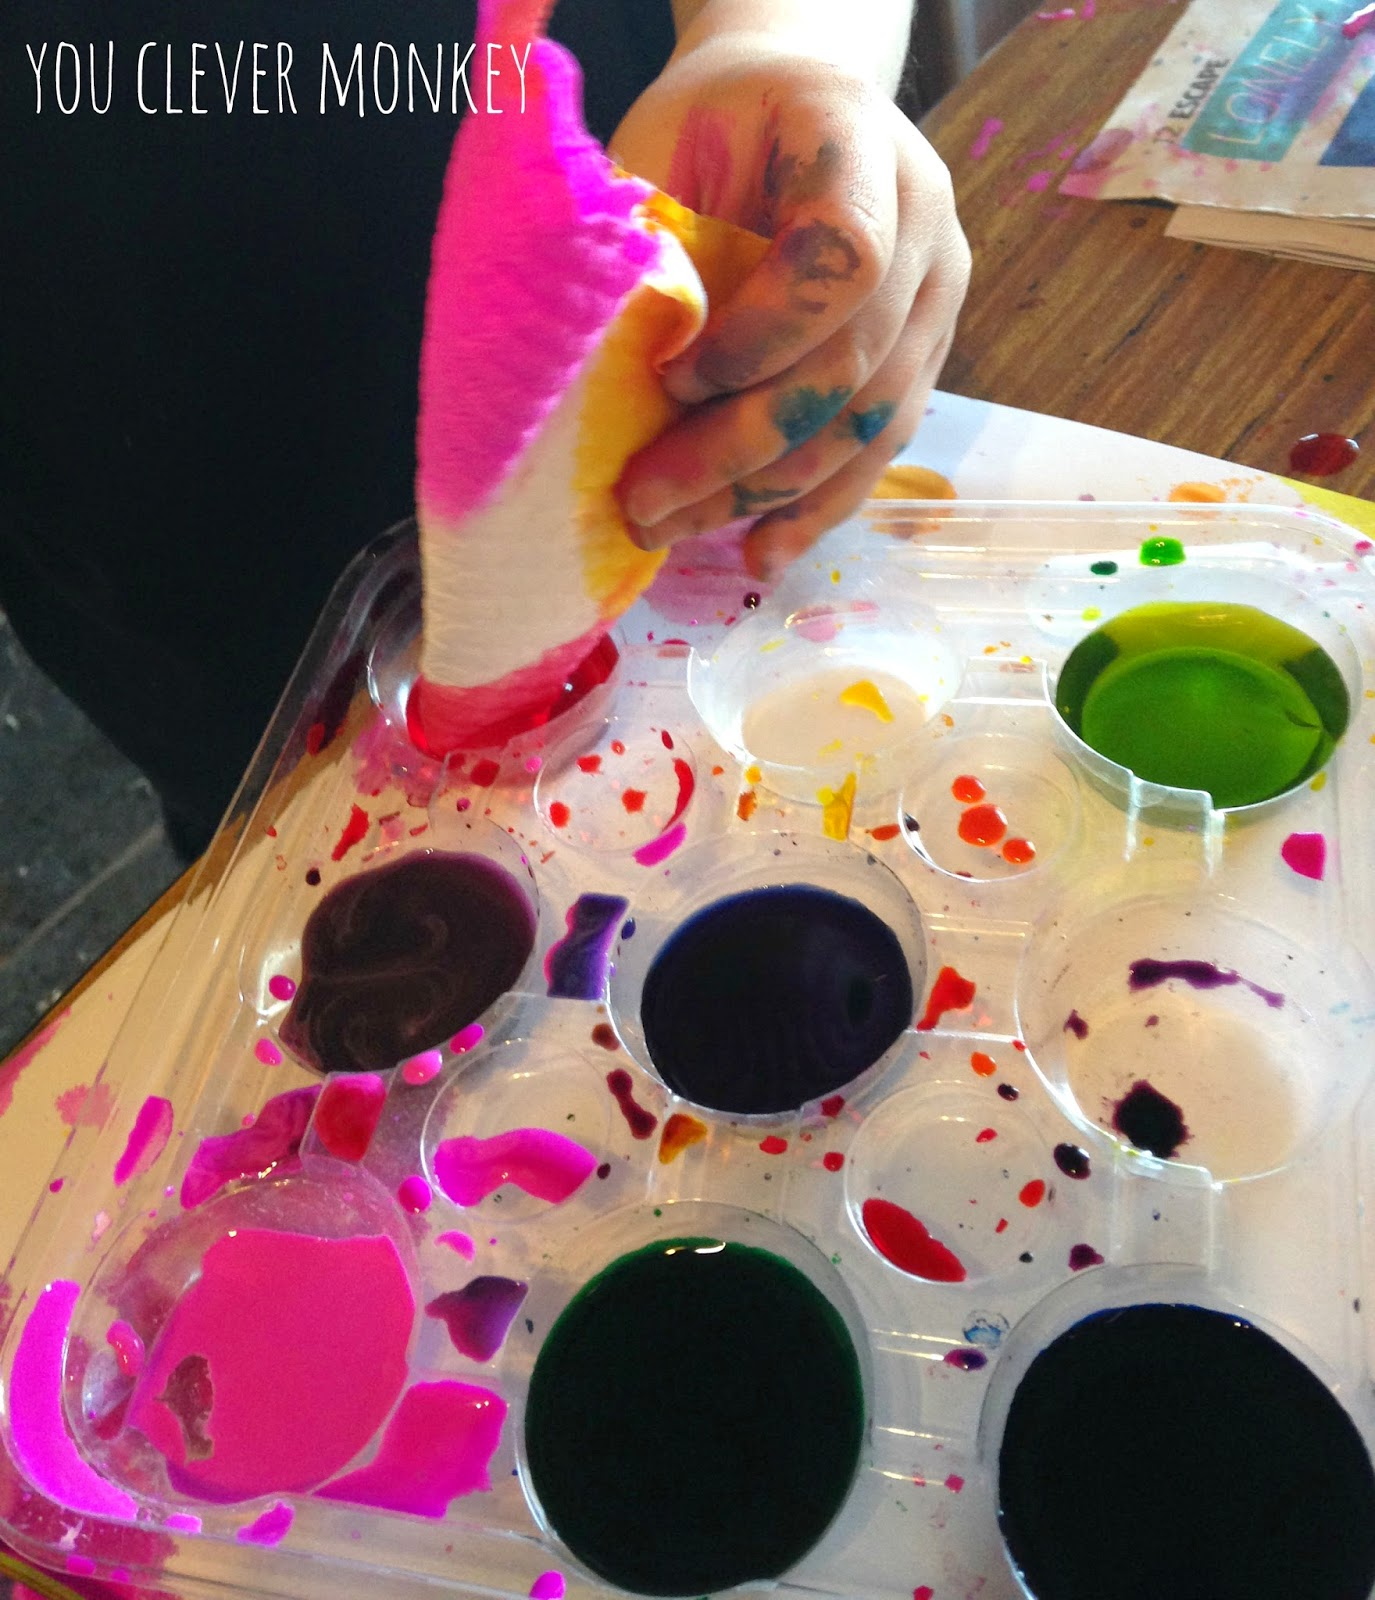 Dip Dying Art - a perfect multi-age art activity for children from materials easily found at home!